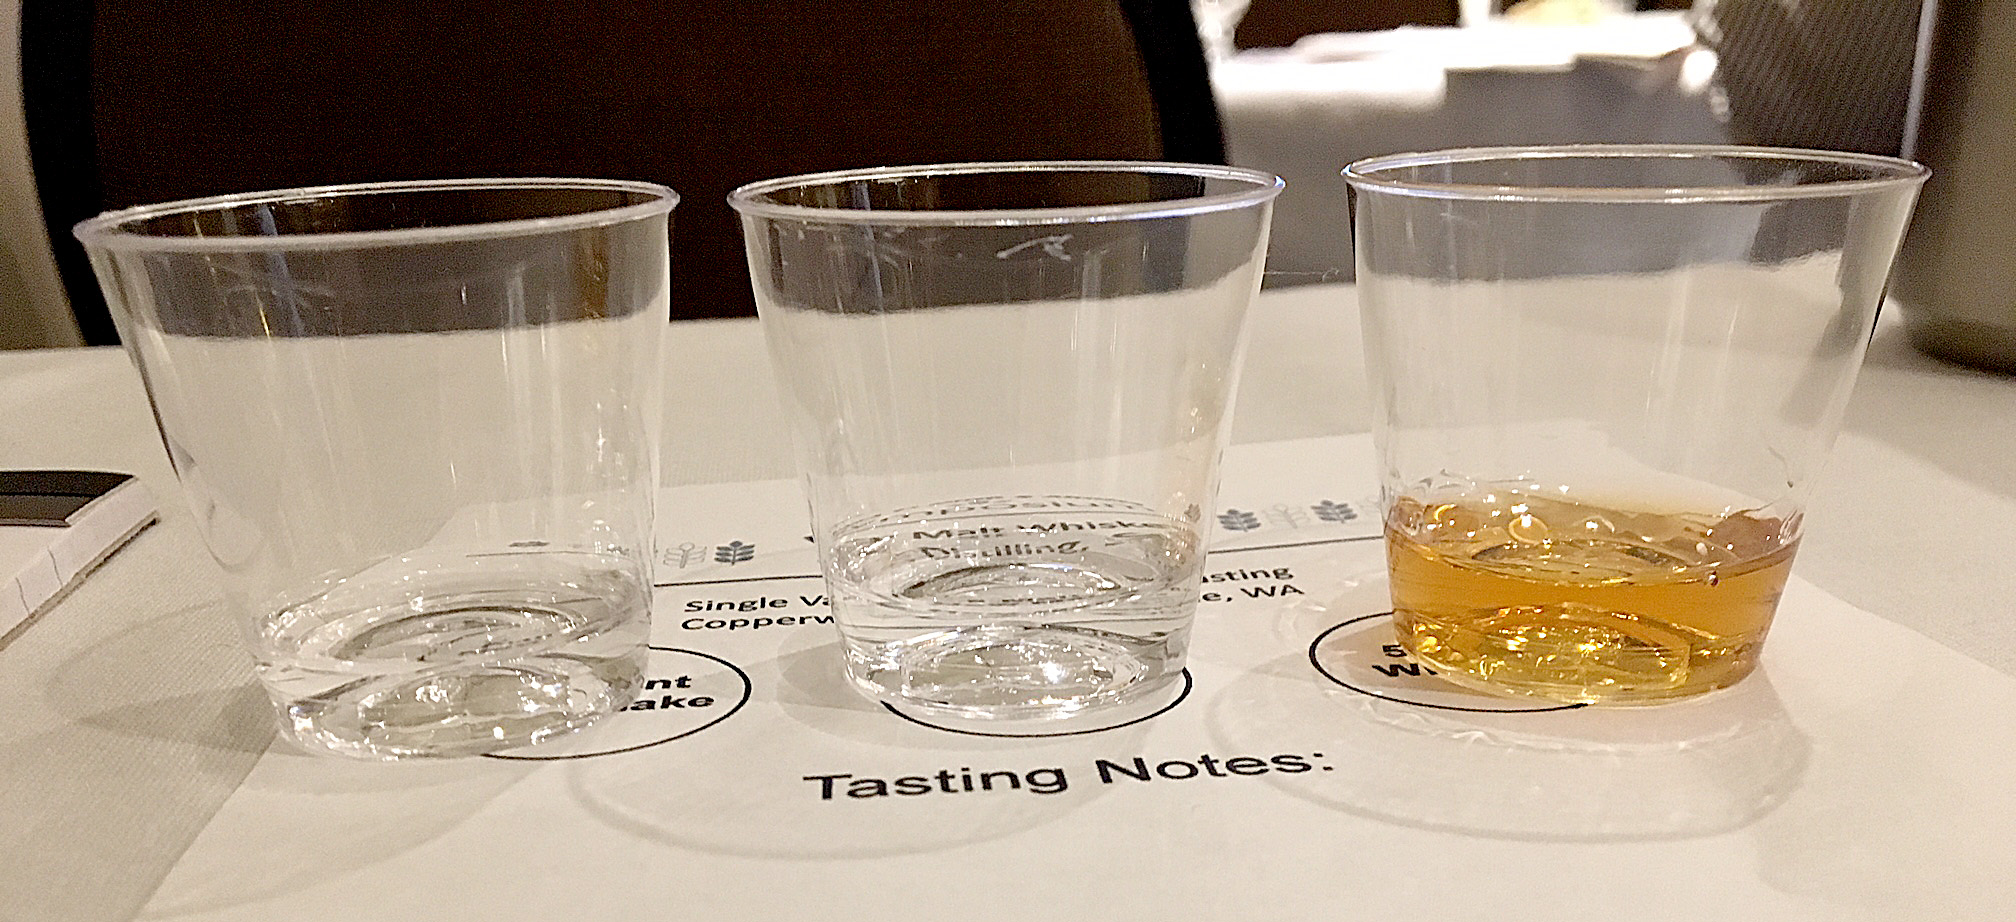 The last morning, including a presentation about malt in whiskey.